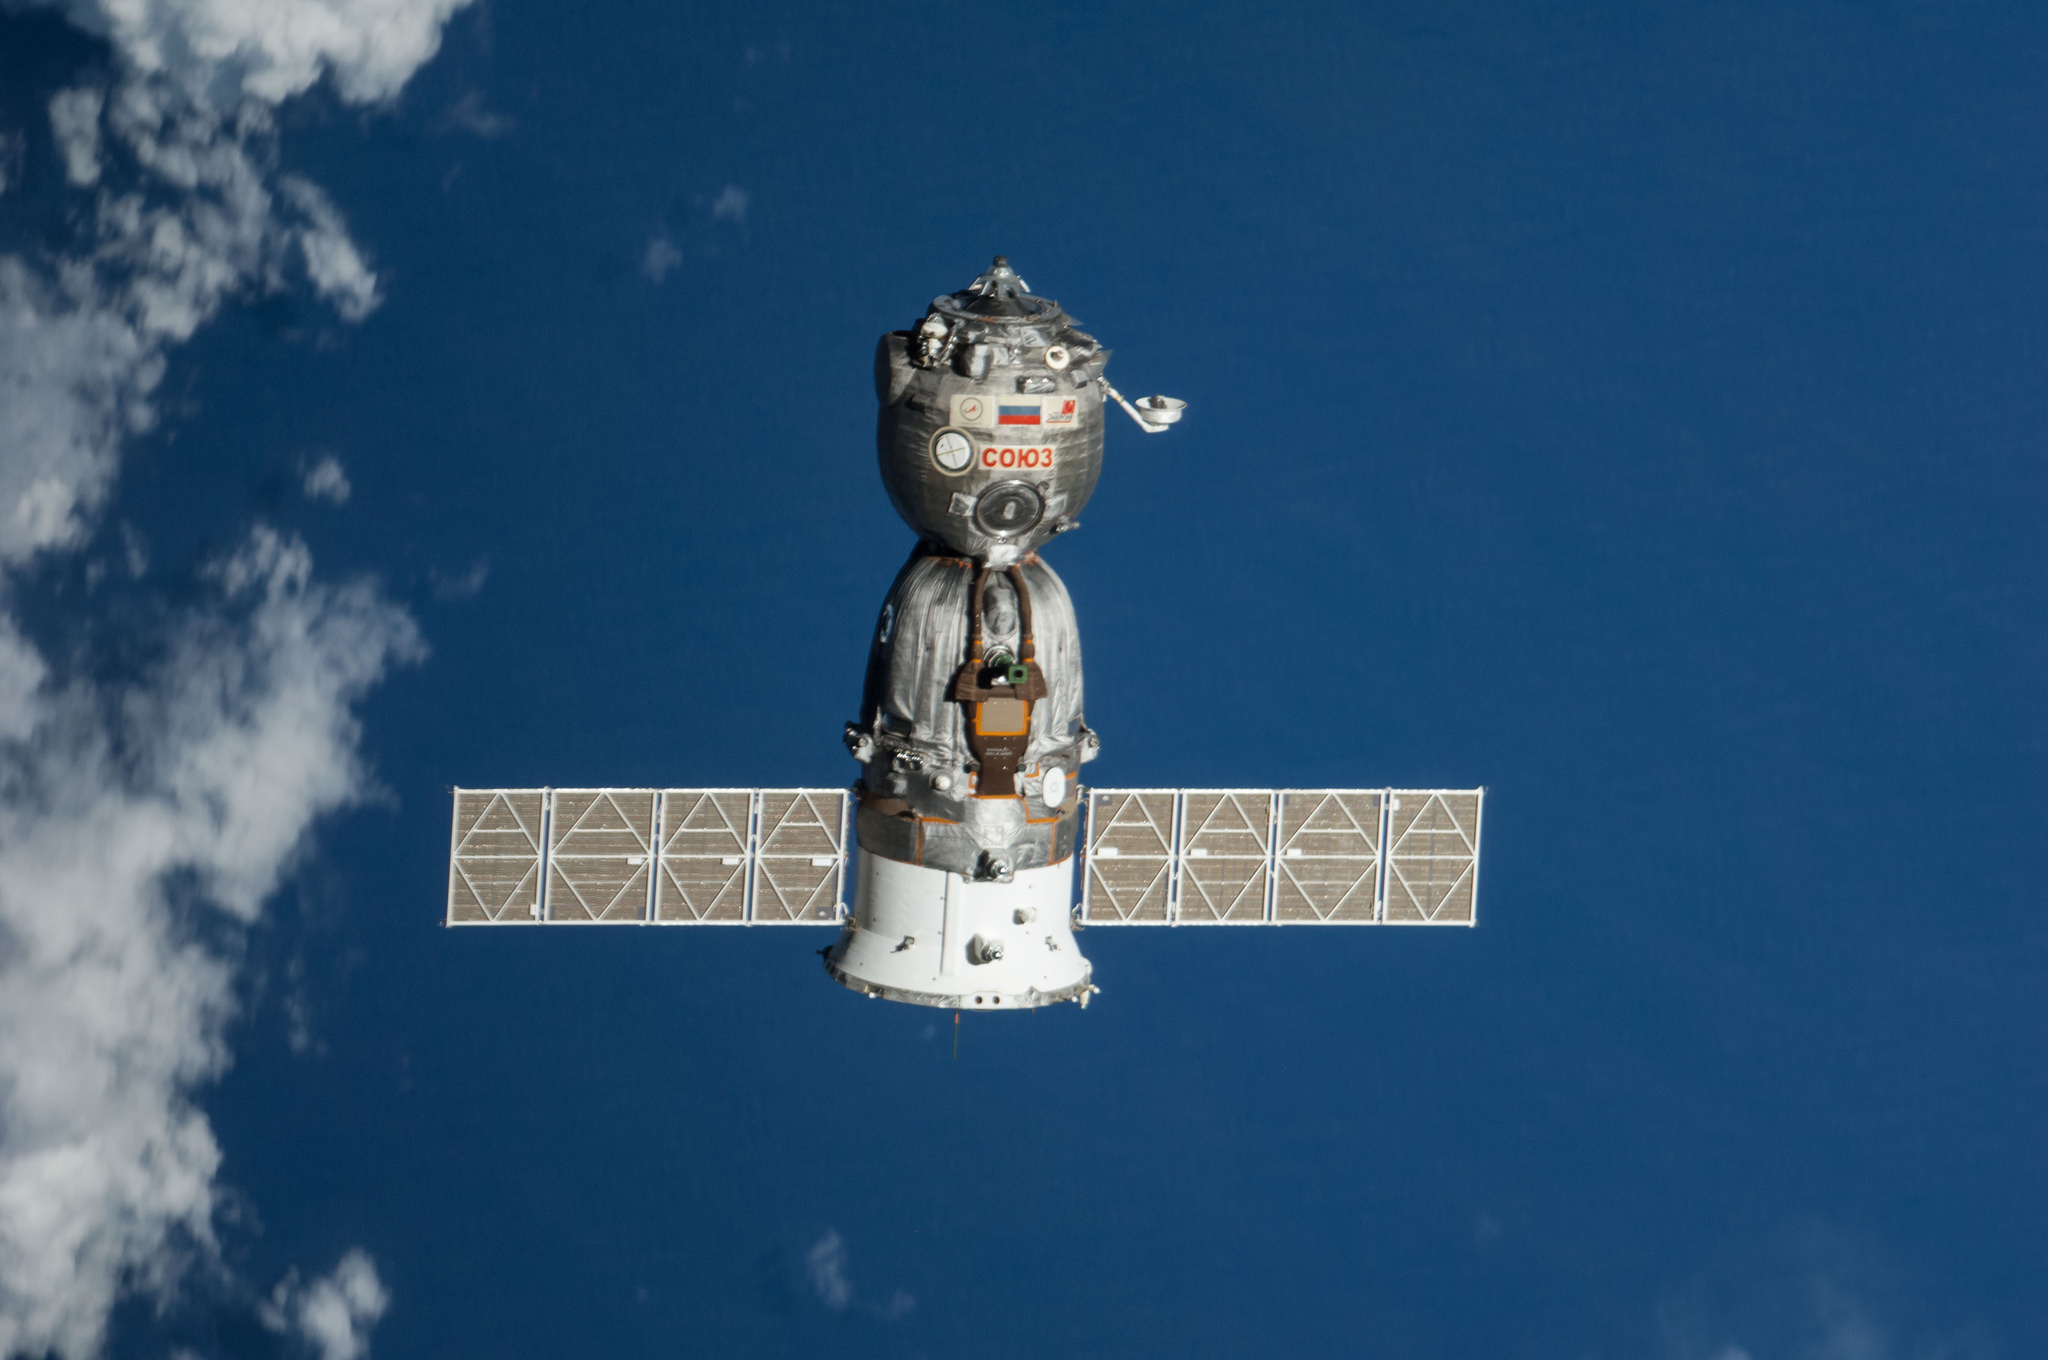 File photo of a Soyuz spacecraft seen from the International Space Station. Credit: NASA